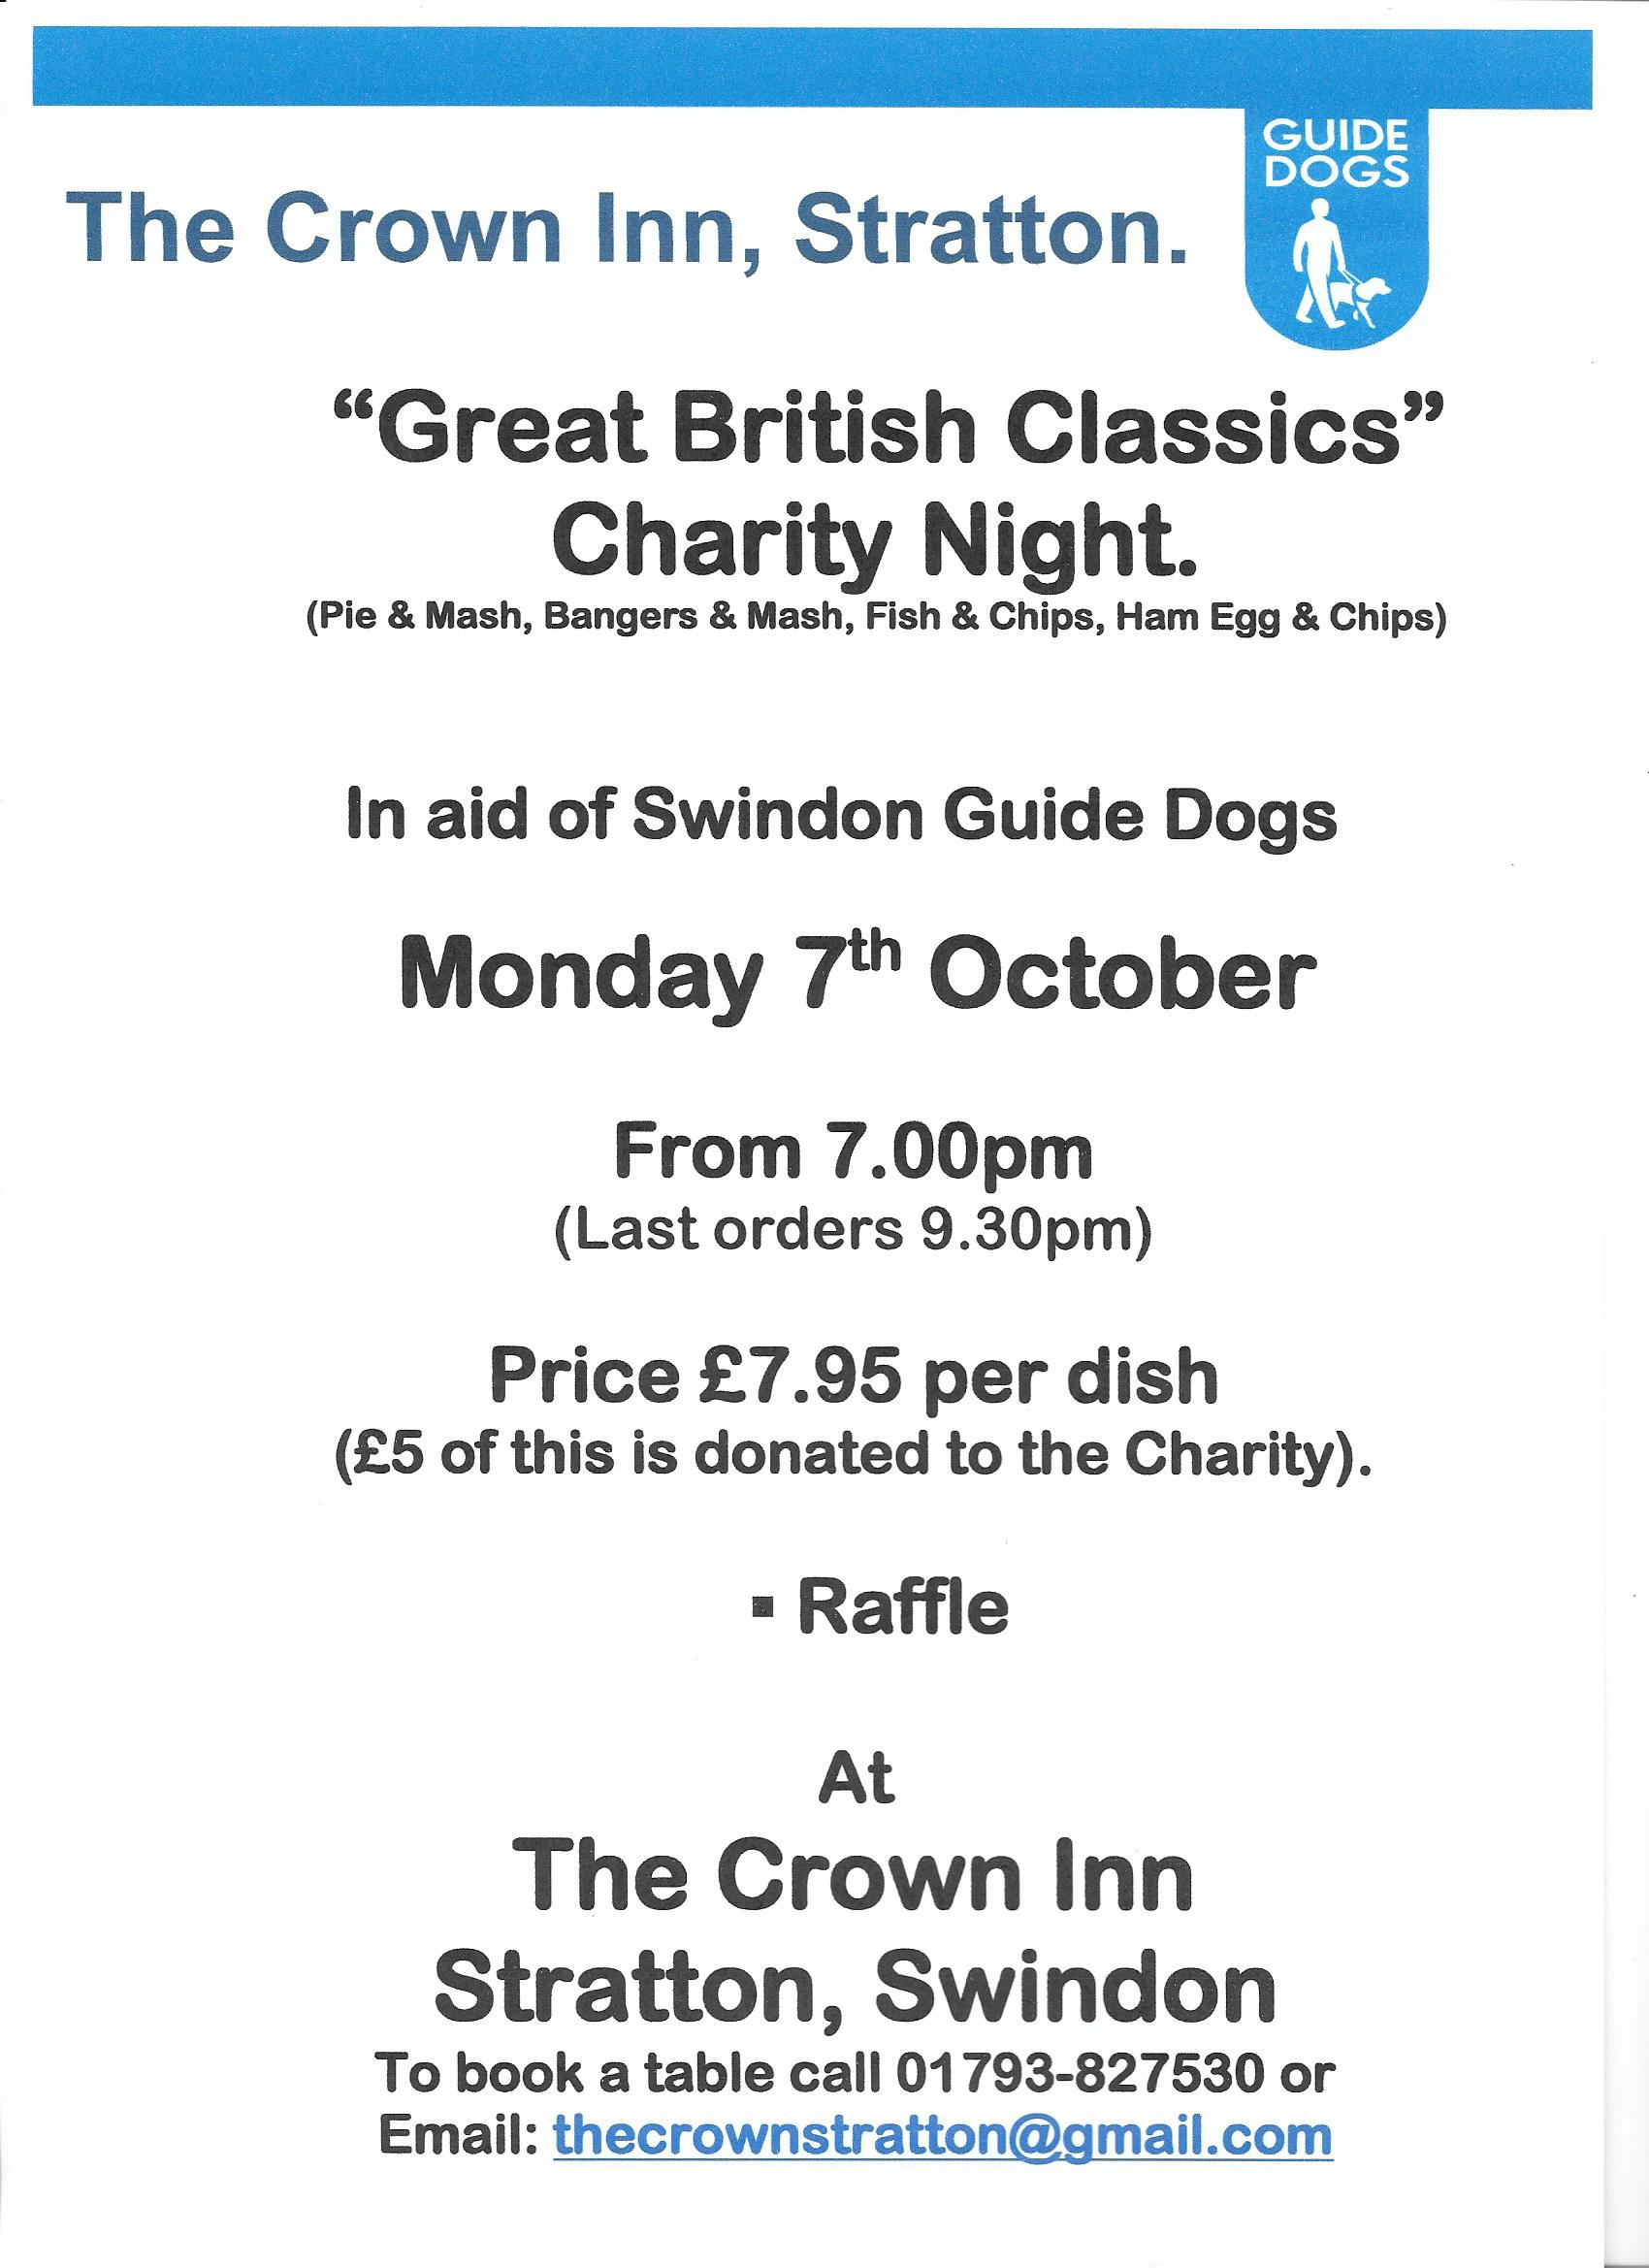 Great British Classics Charity Night.